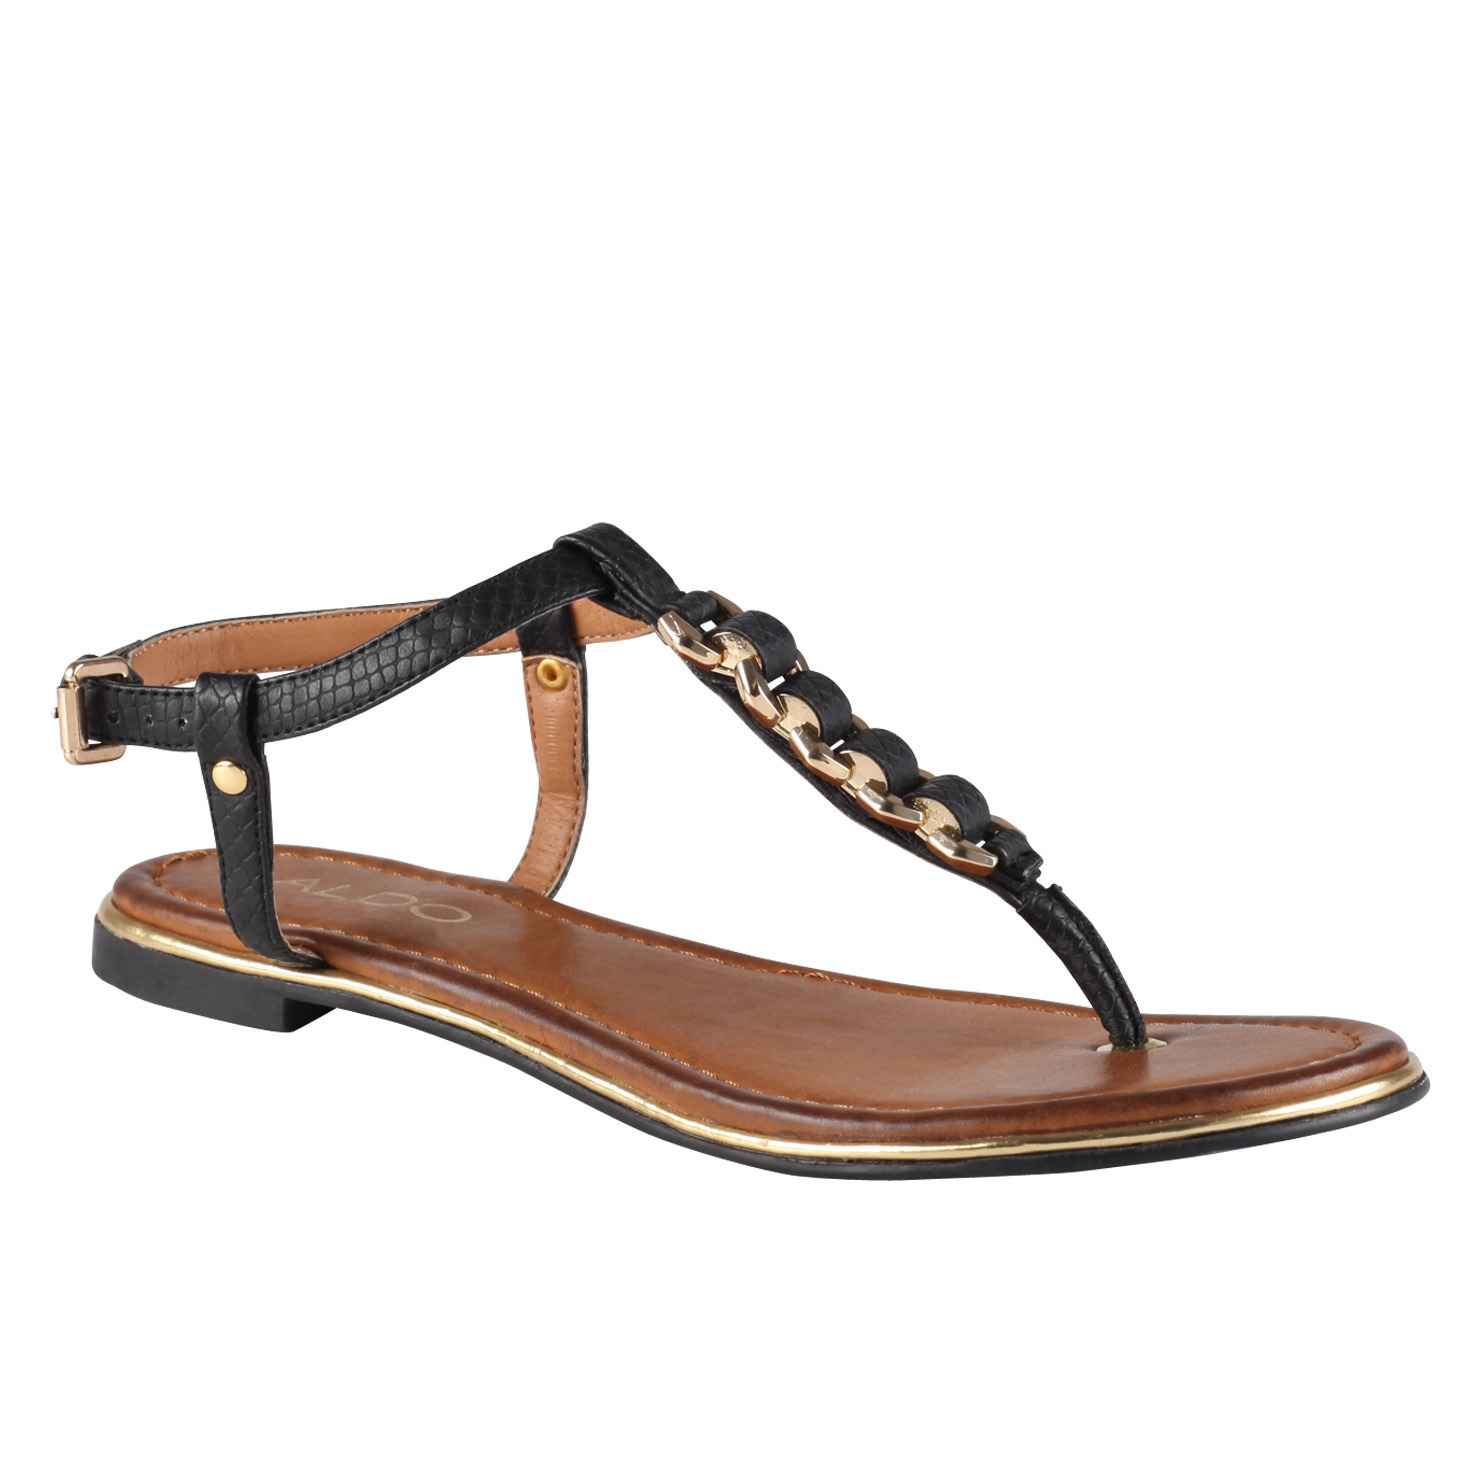 New Look summer sandal designs collection 2015-2016 (3)